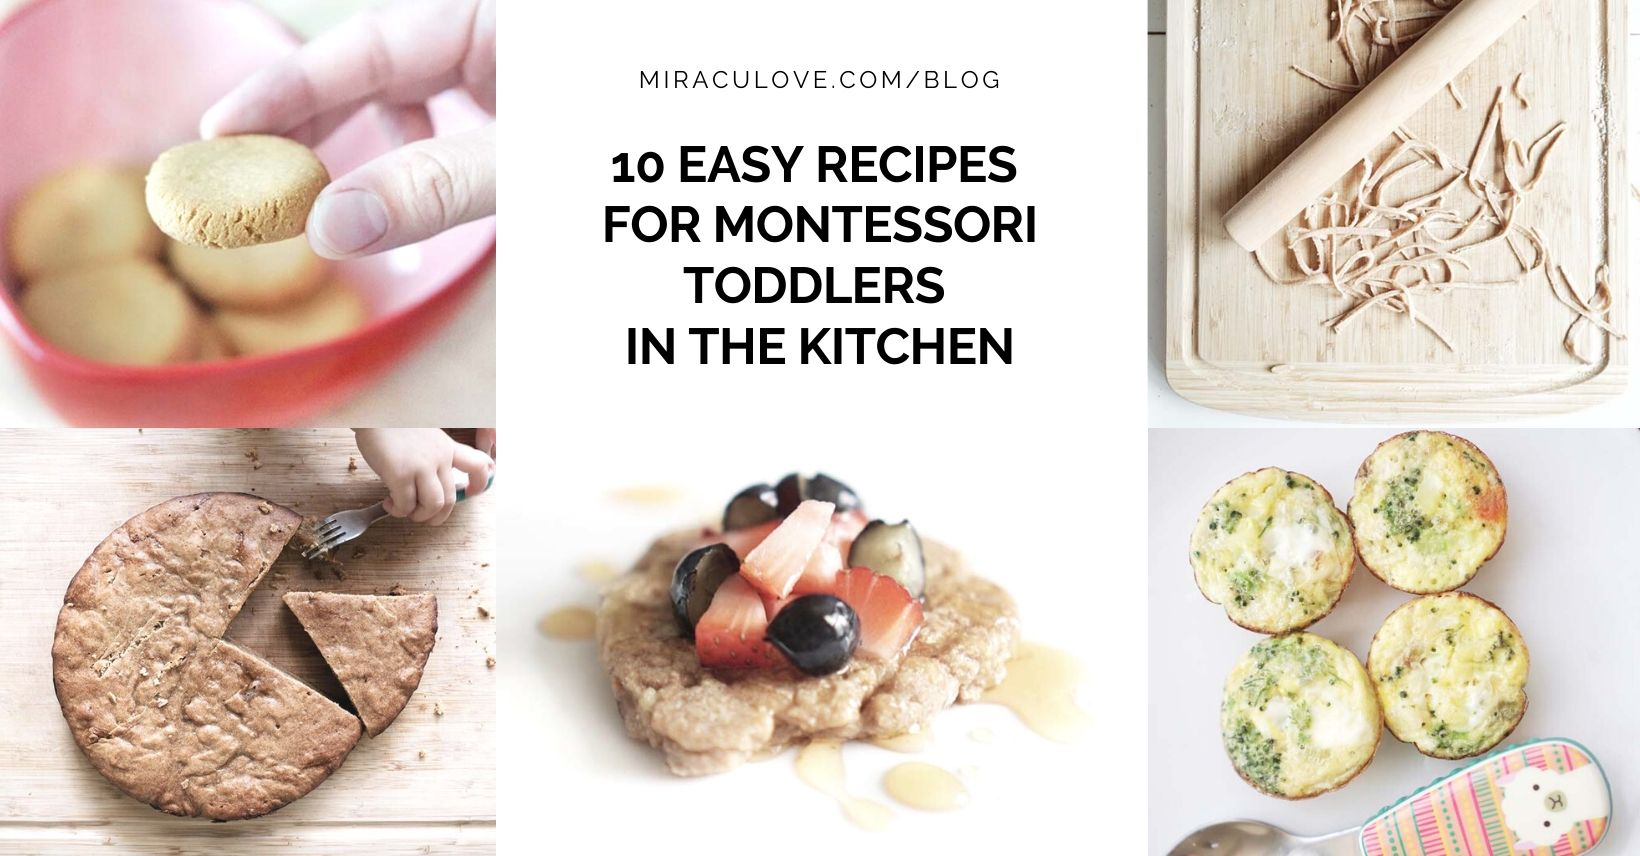 10 Easy Recipes for Montessori Toddlers in the Kitchen